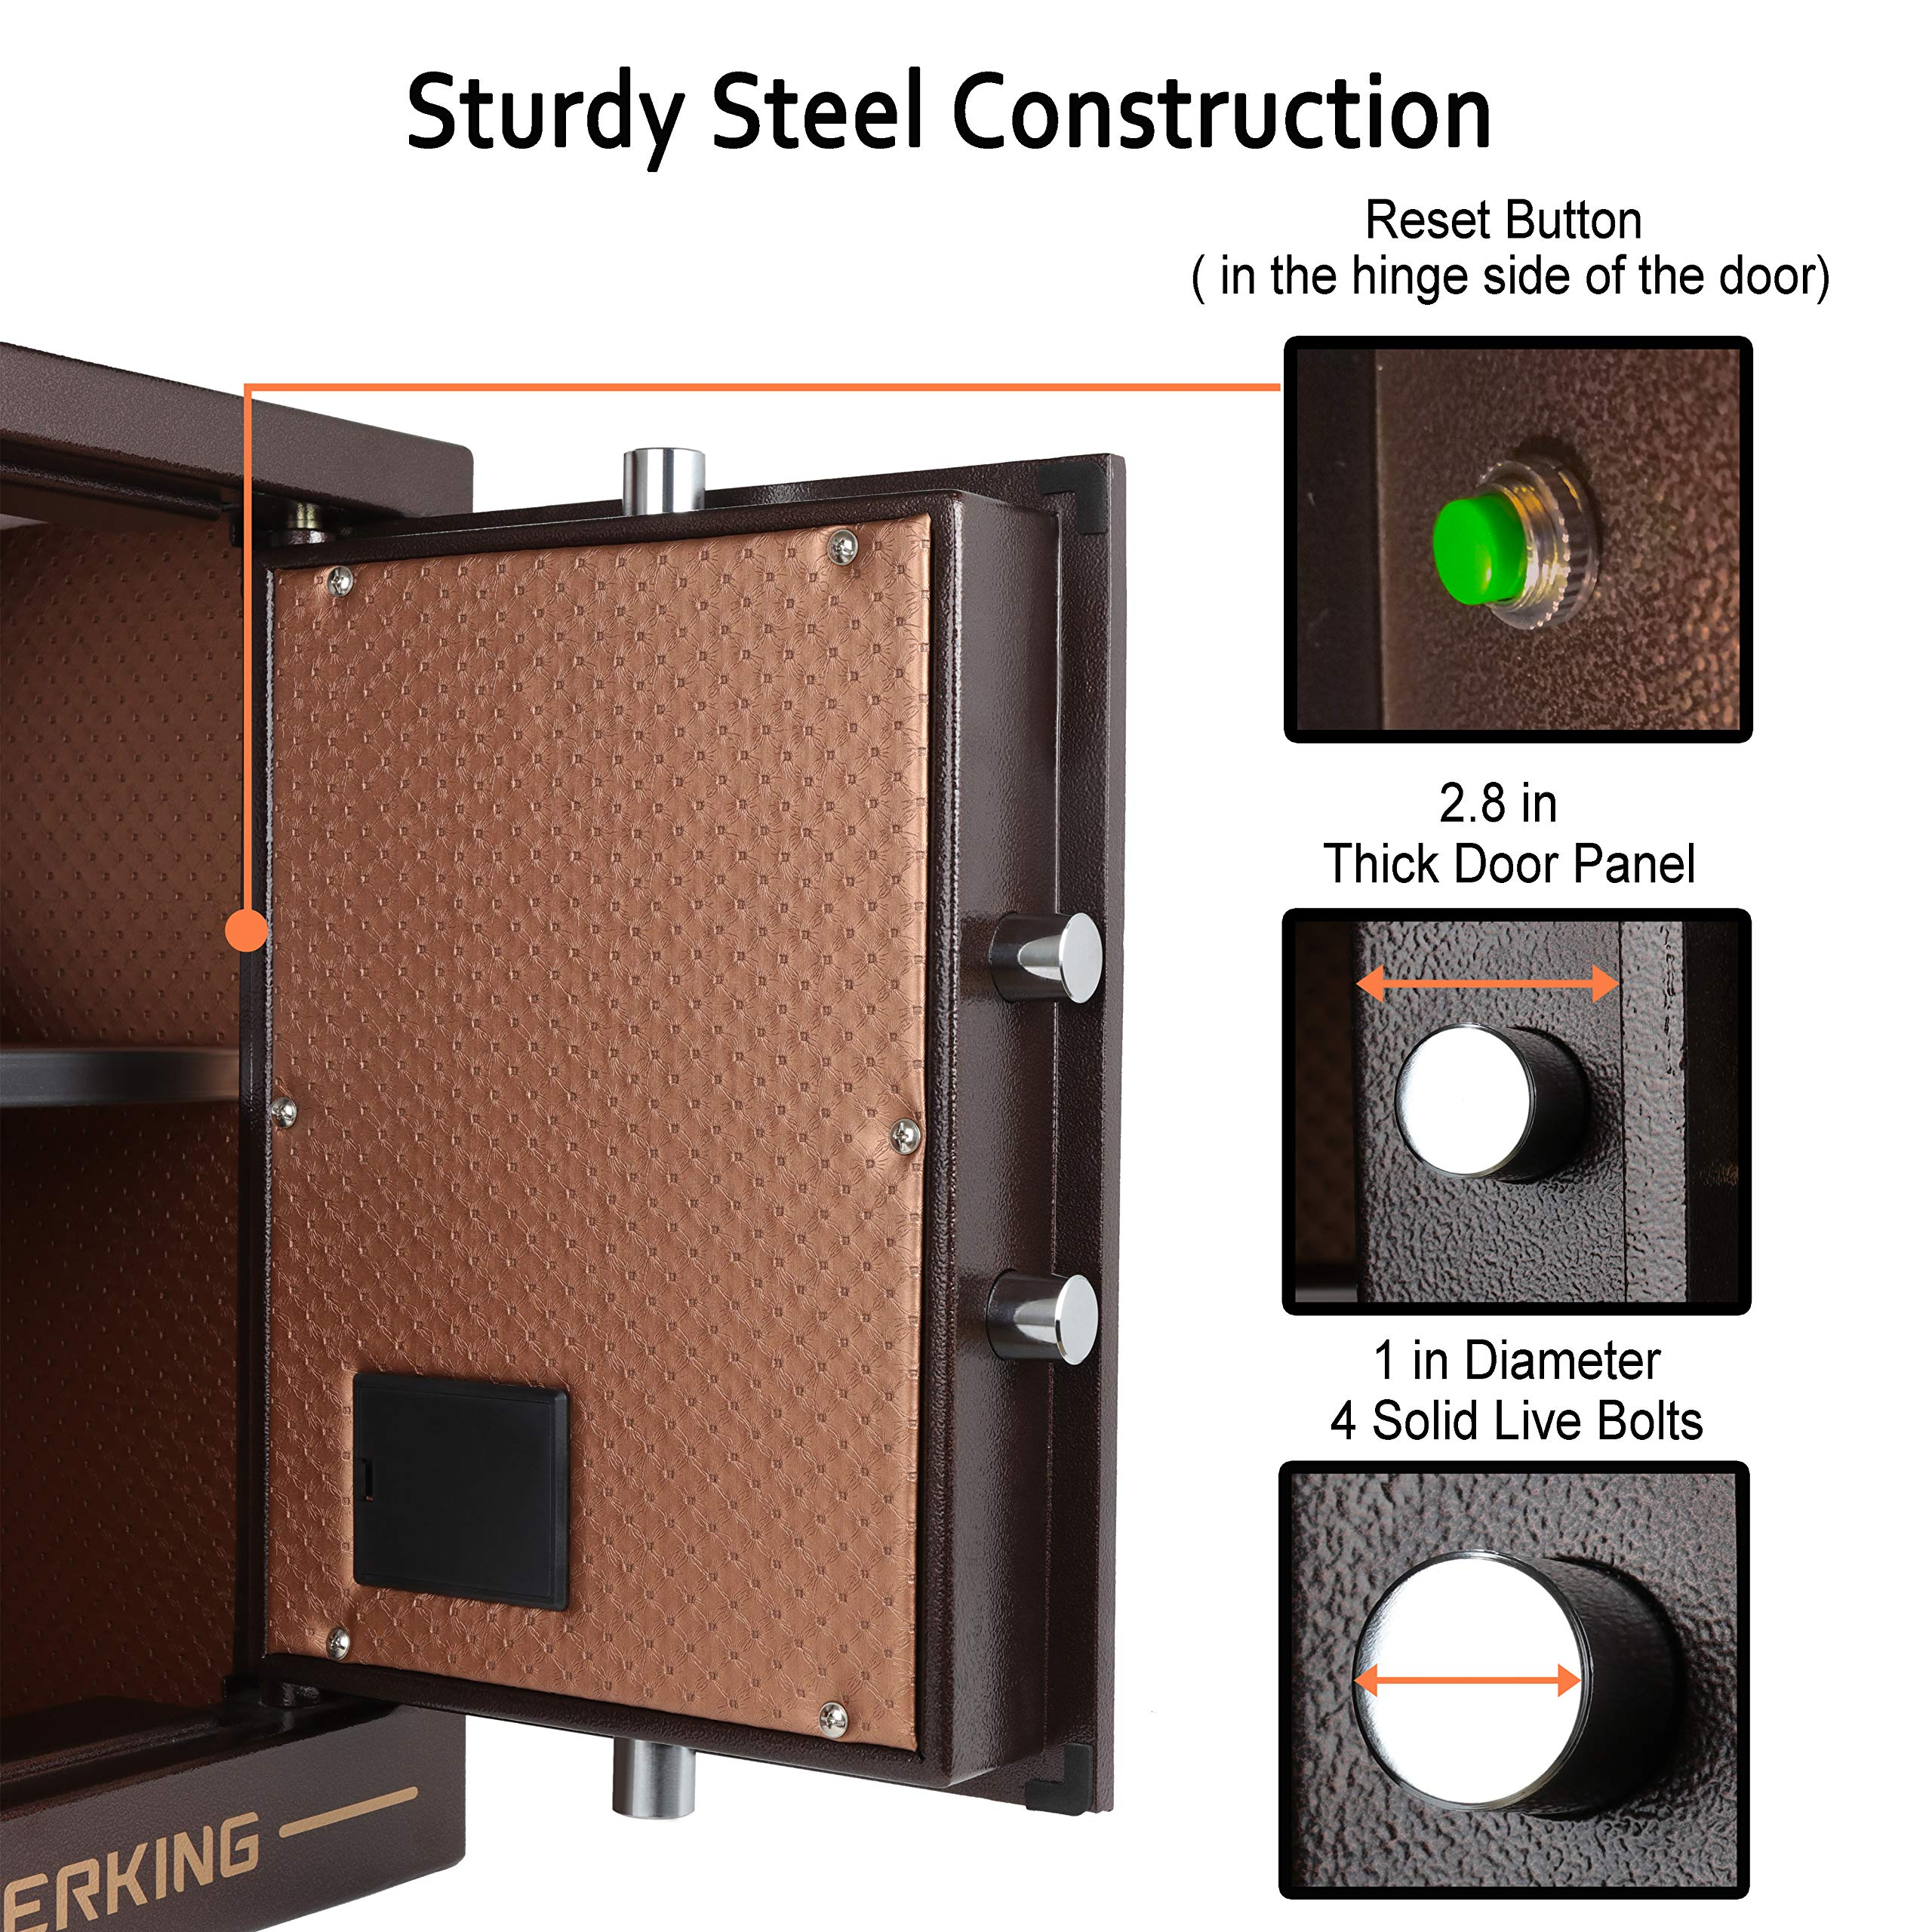 Digital Security Safe Box Solid Alloy Steel Construction with 4  Live-Locking Bolts Password Plus Key Setting for Home Office Hotel 1  34  Cubic Feet By